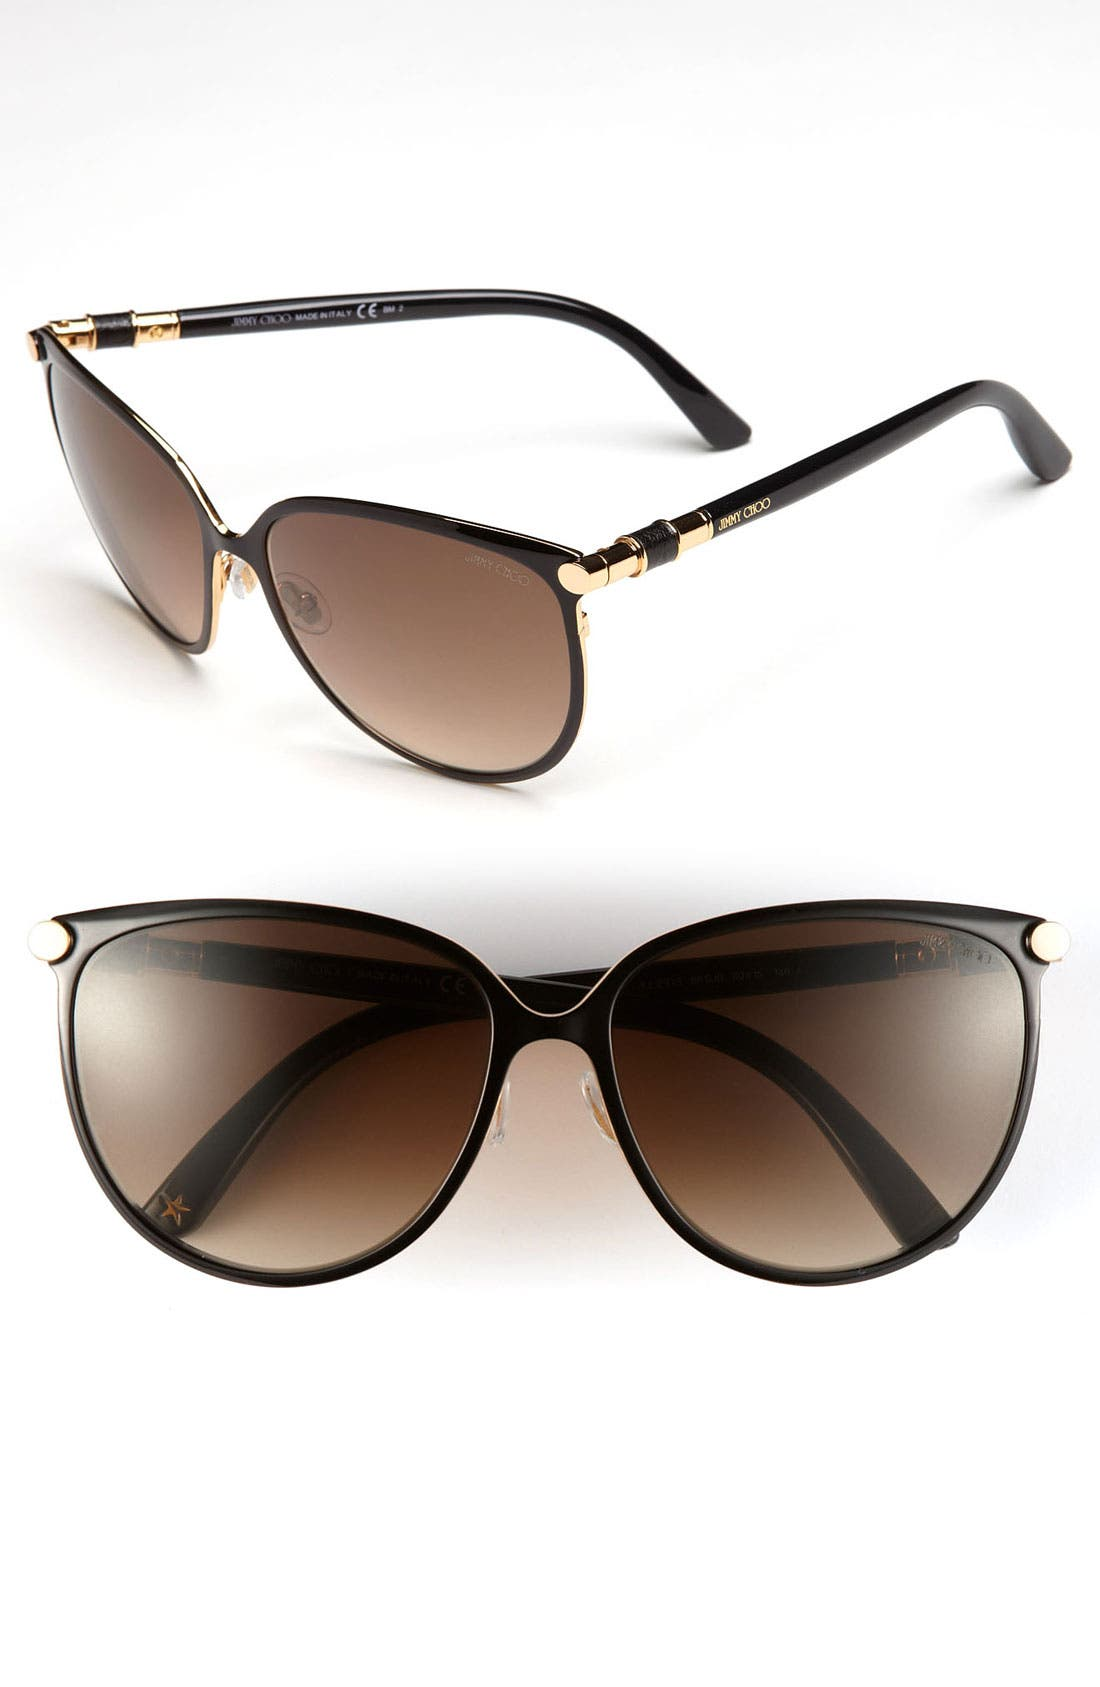 Main Image - Jimmy Choo 'Juliet' 60mm Cat's Eye Sunglasses